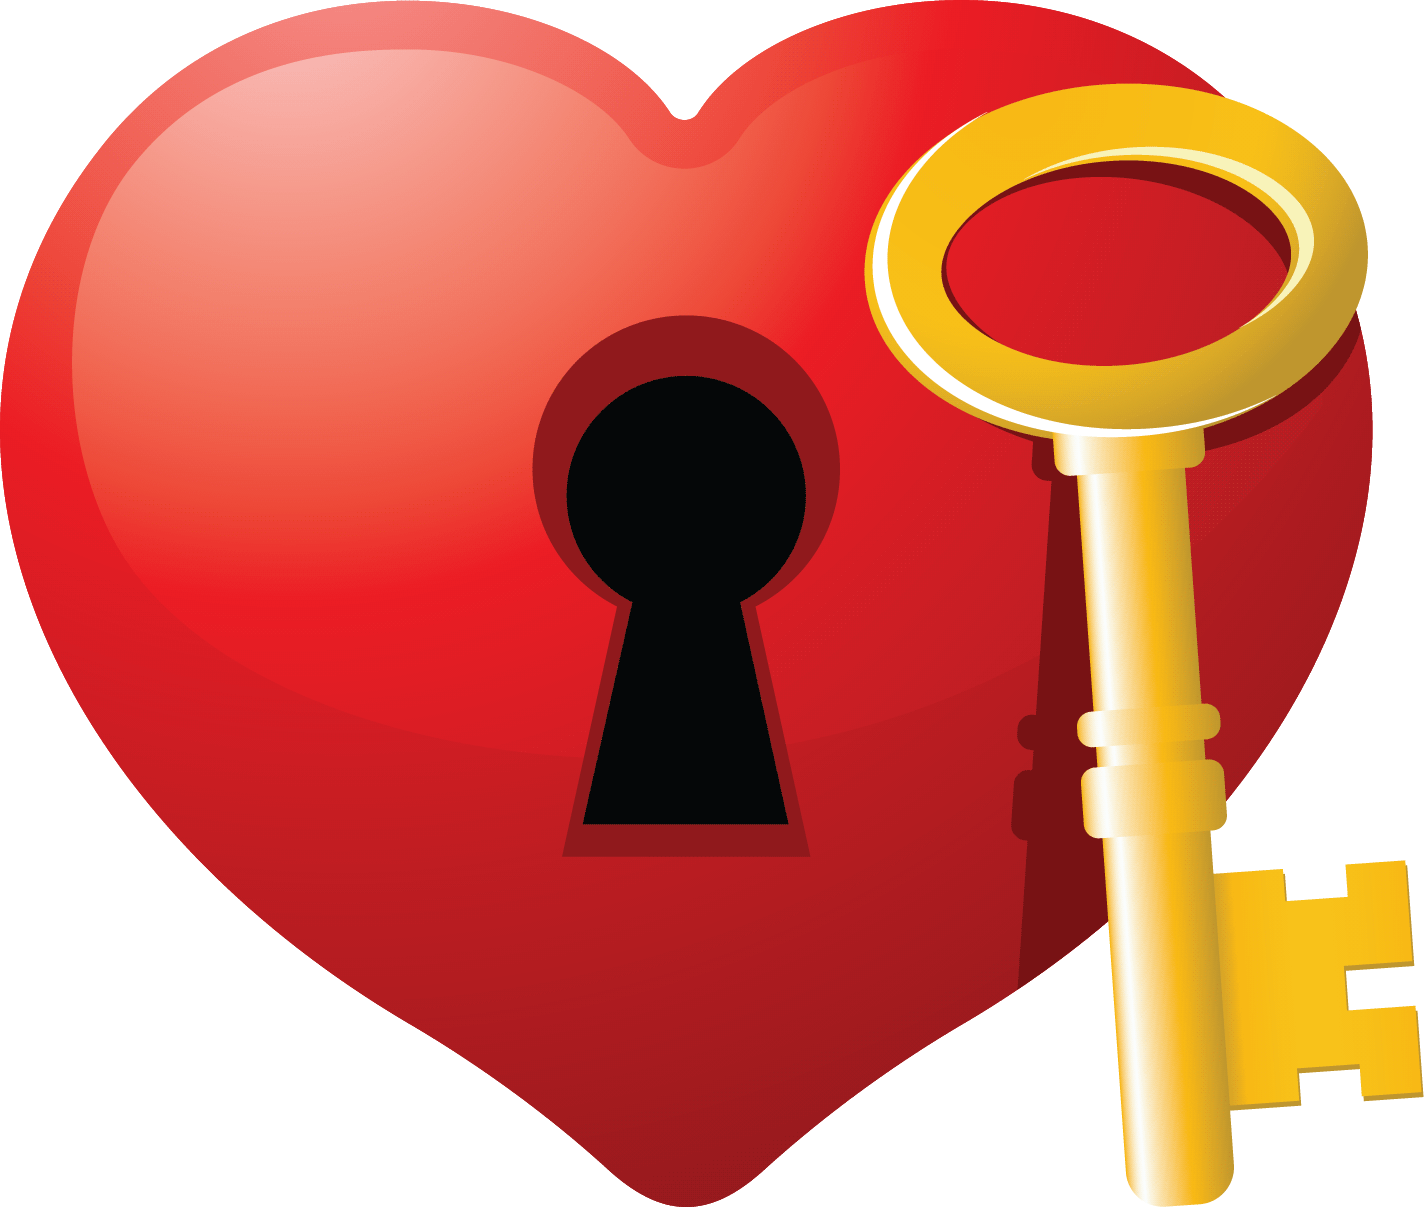 1424x1207 Broken Heart Clip Art Free Clipart Images Image